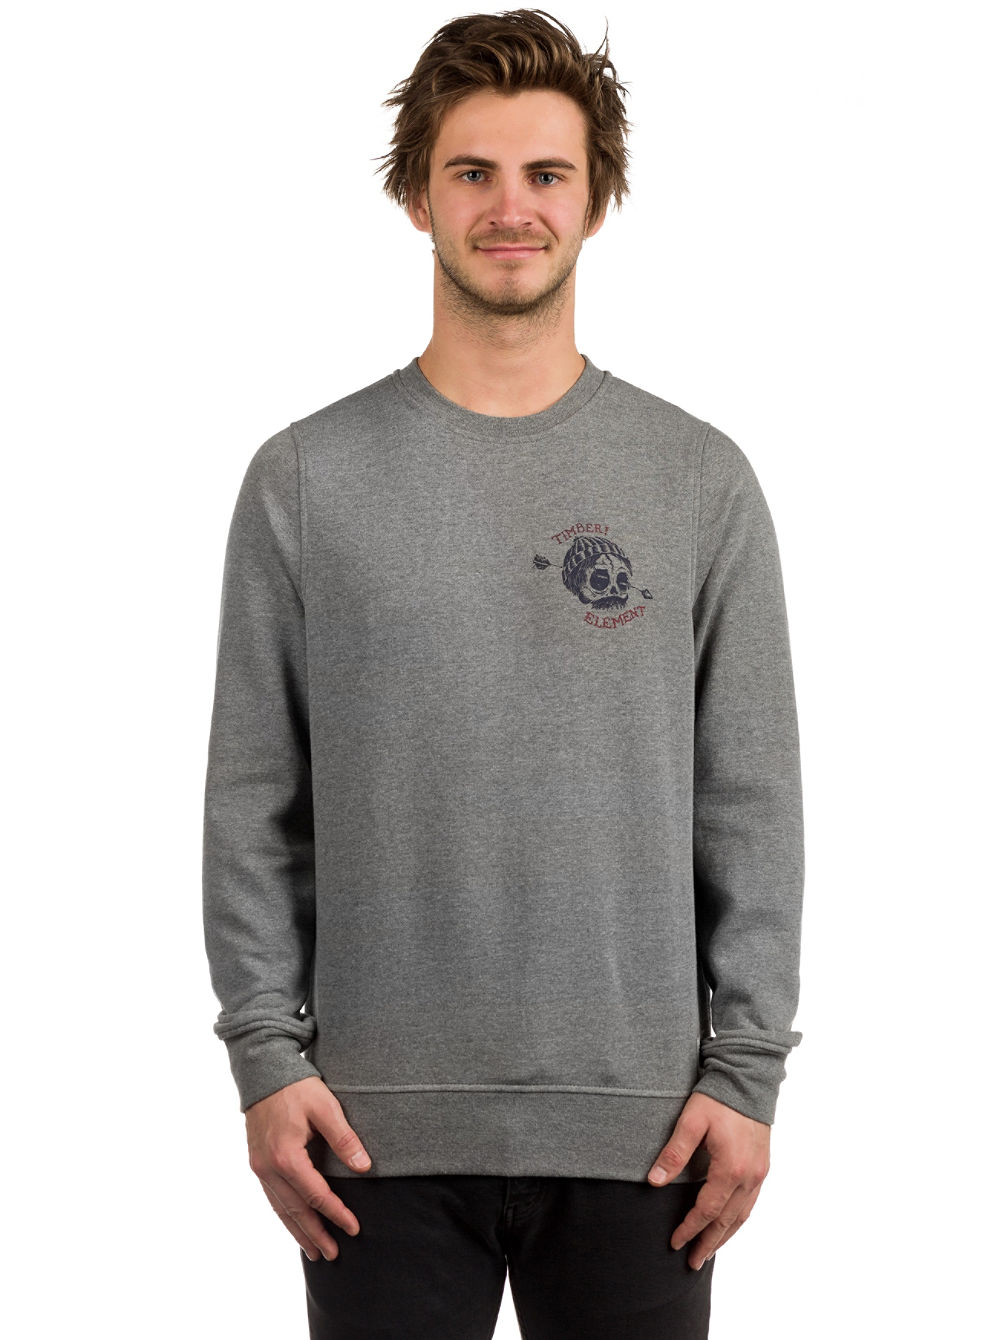 Around Crew Sweater